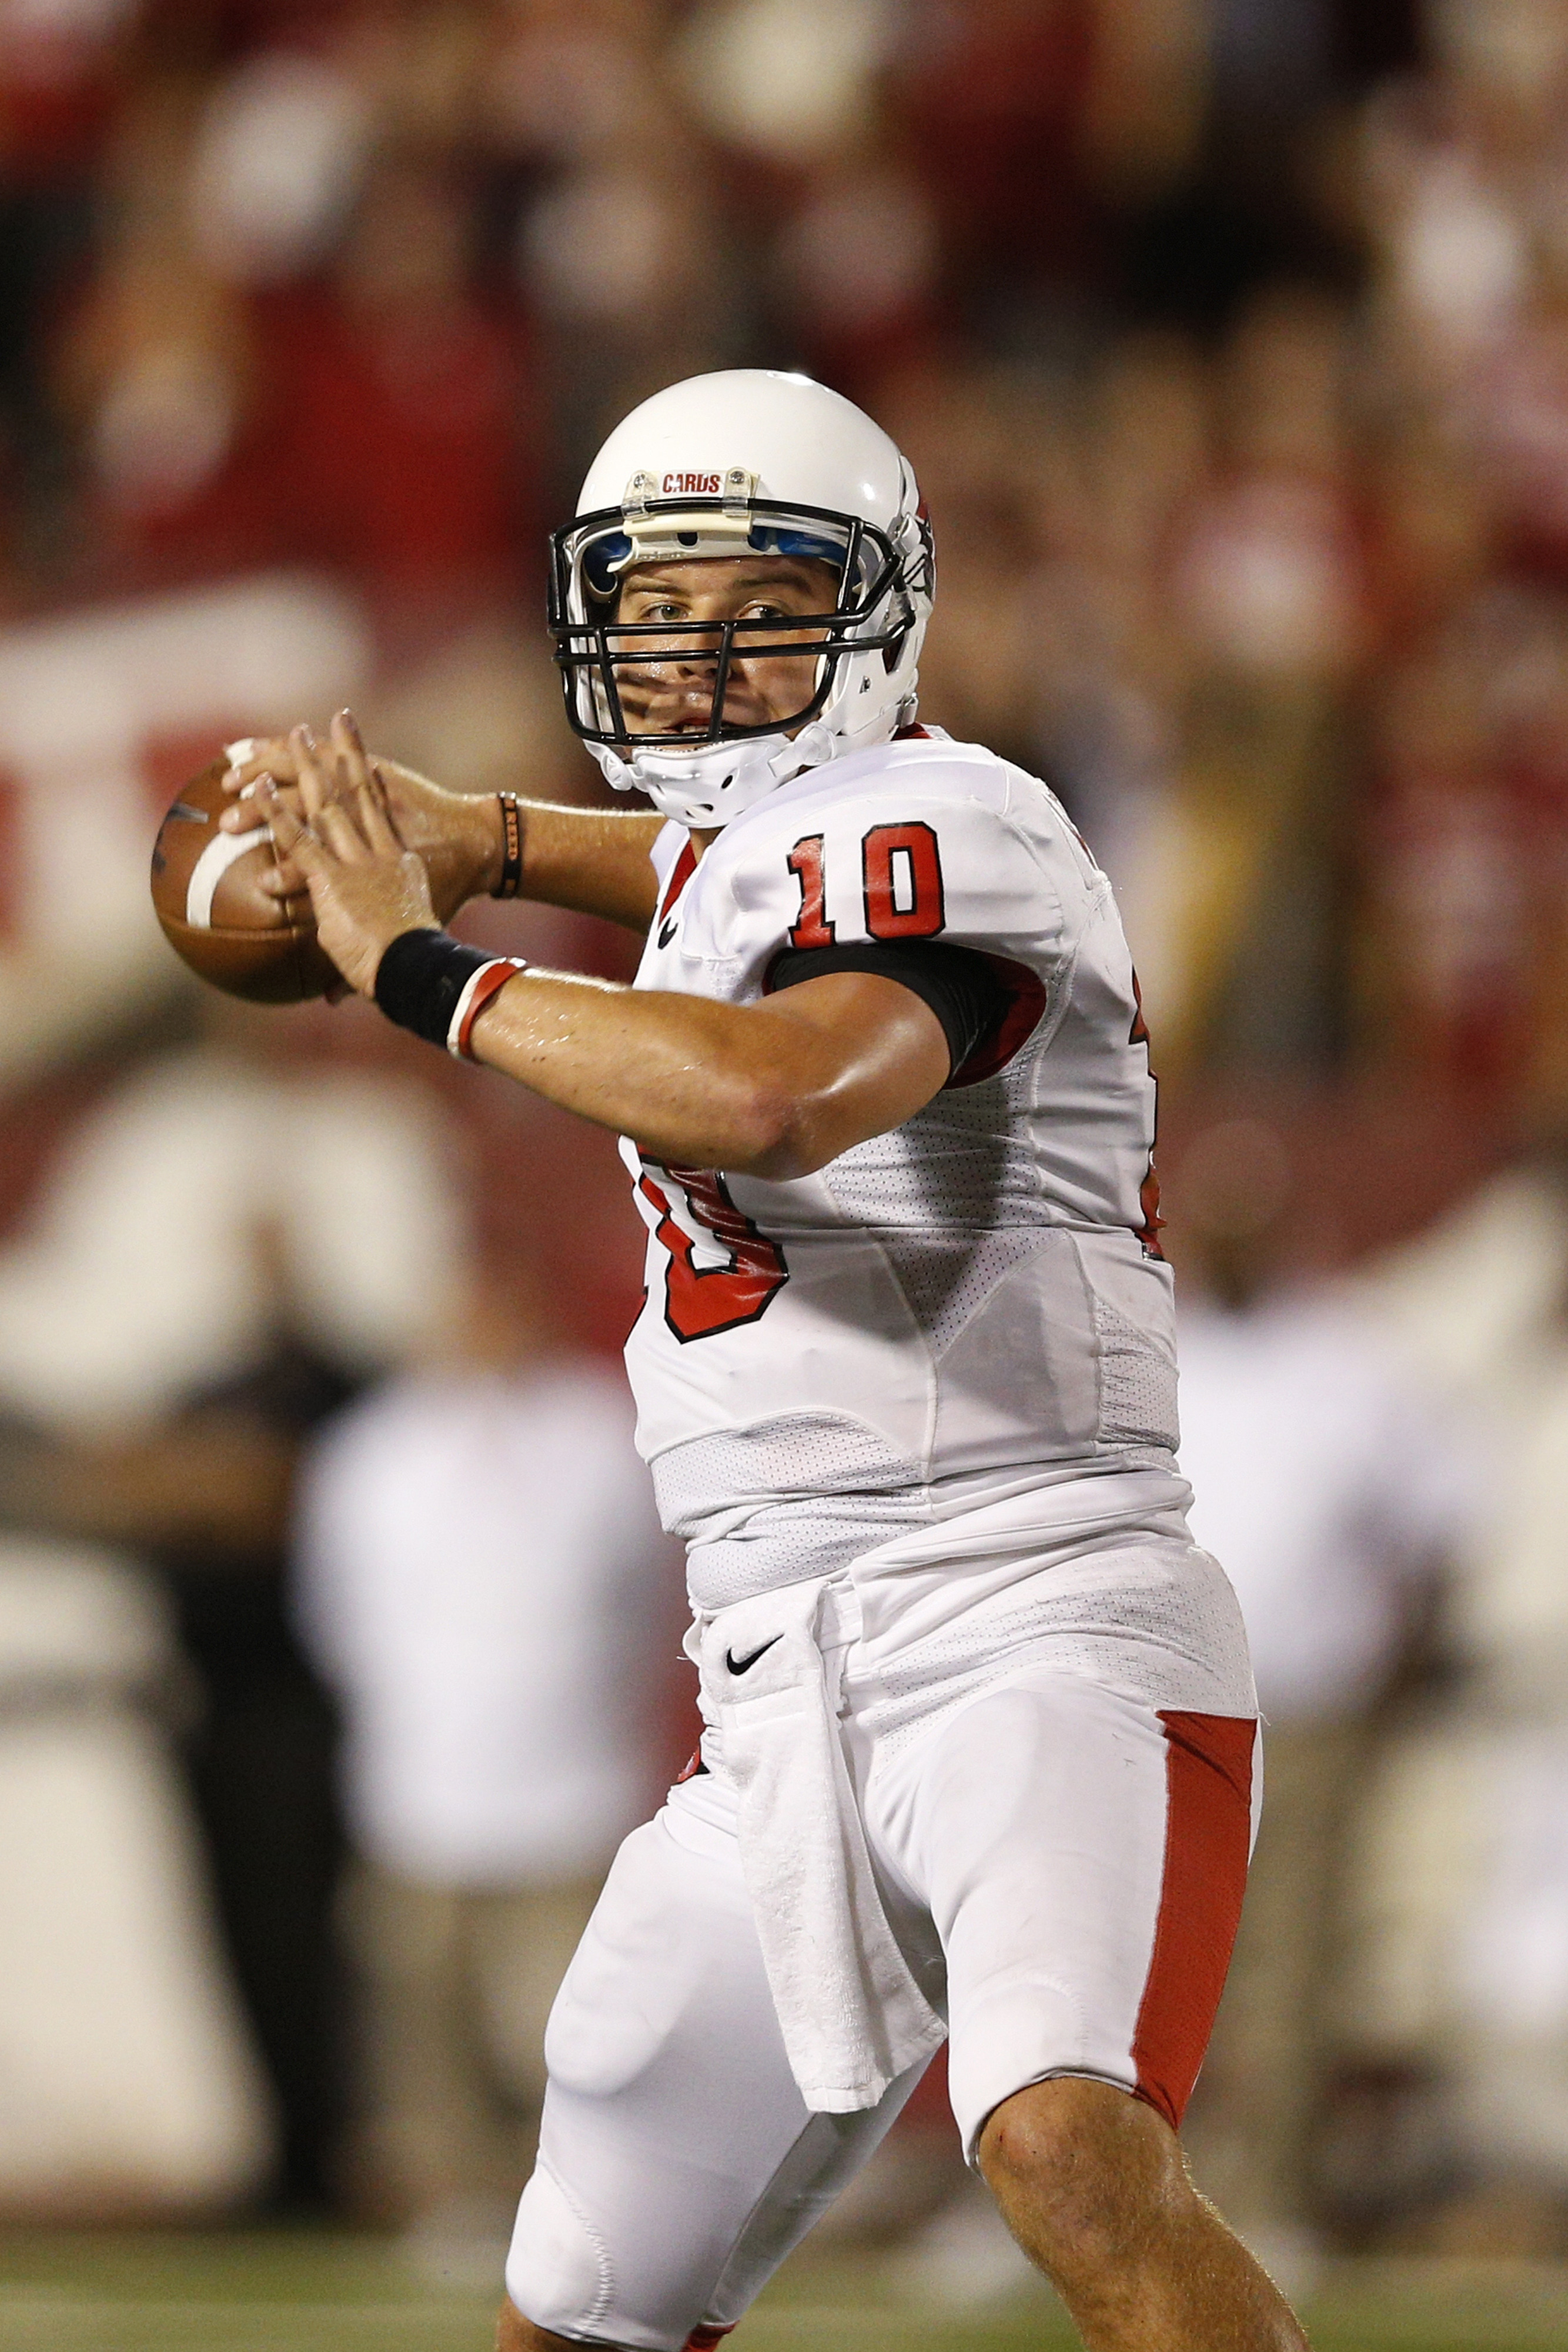 Keith Wenning and his Ball State Cardinals took down #25 Toledo at the Glass Bowl.